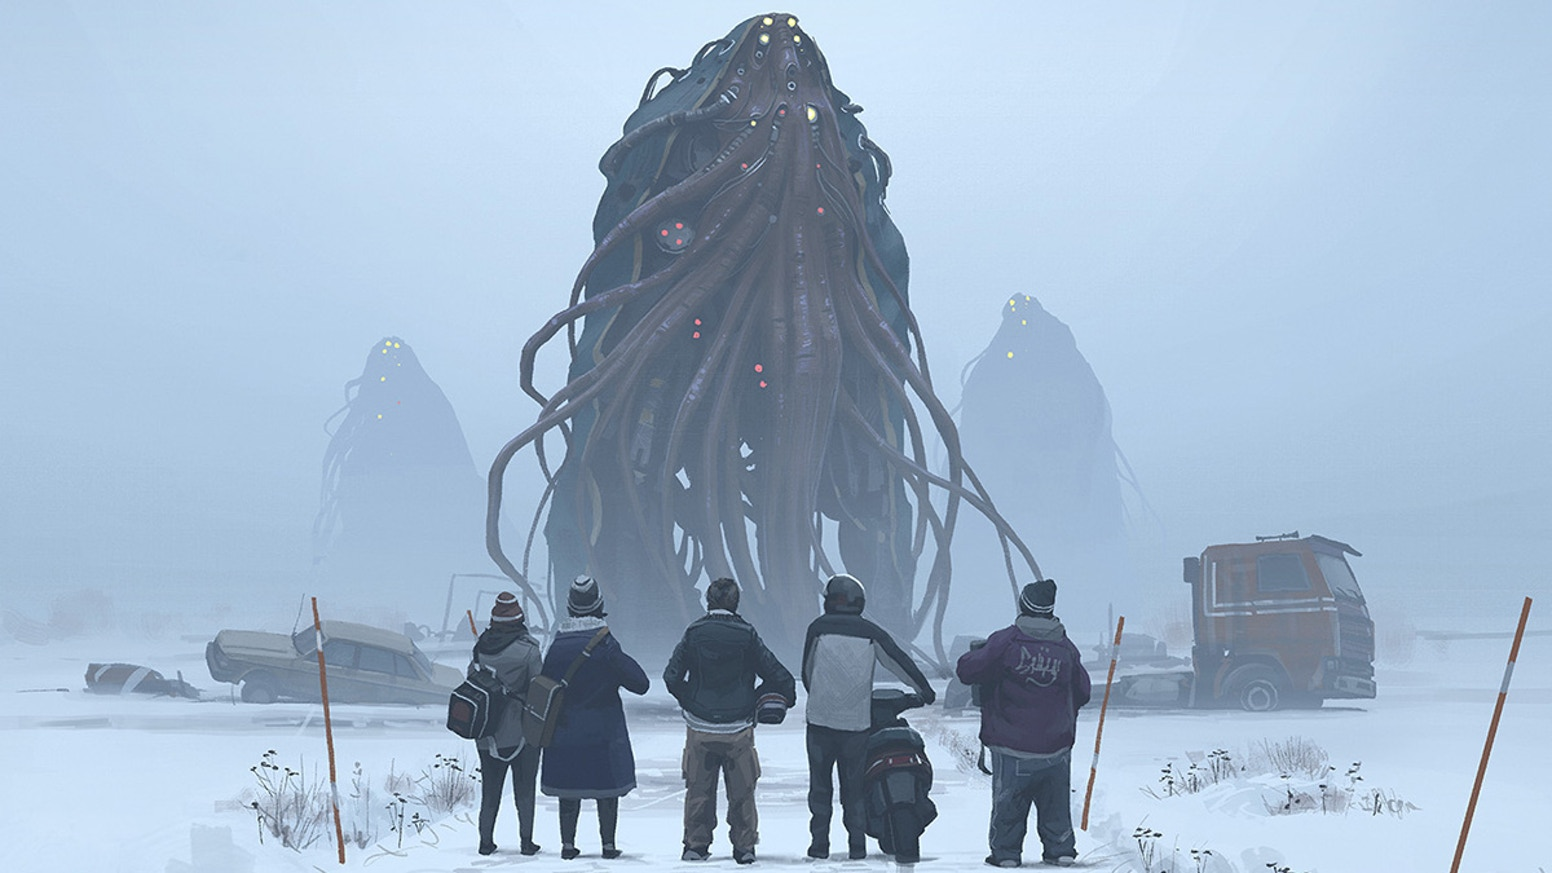 Return to Simon Stålenhag's world of the Loop in this new RPG. It's the '90s now, and things are different. This time, you can die.